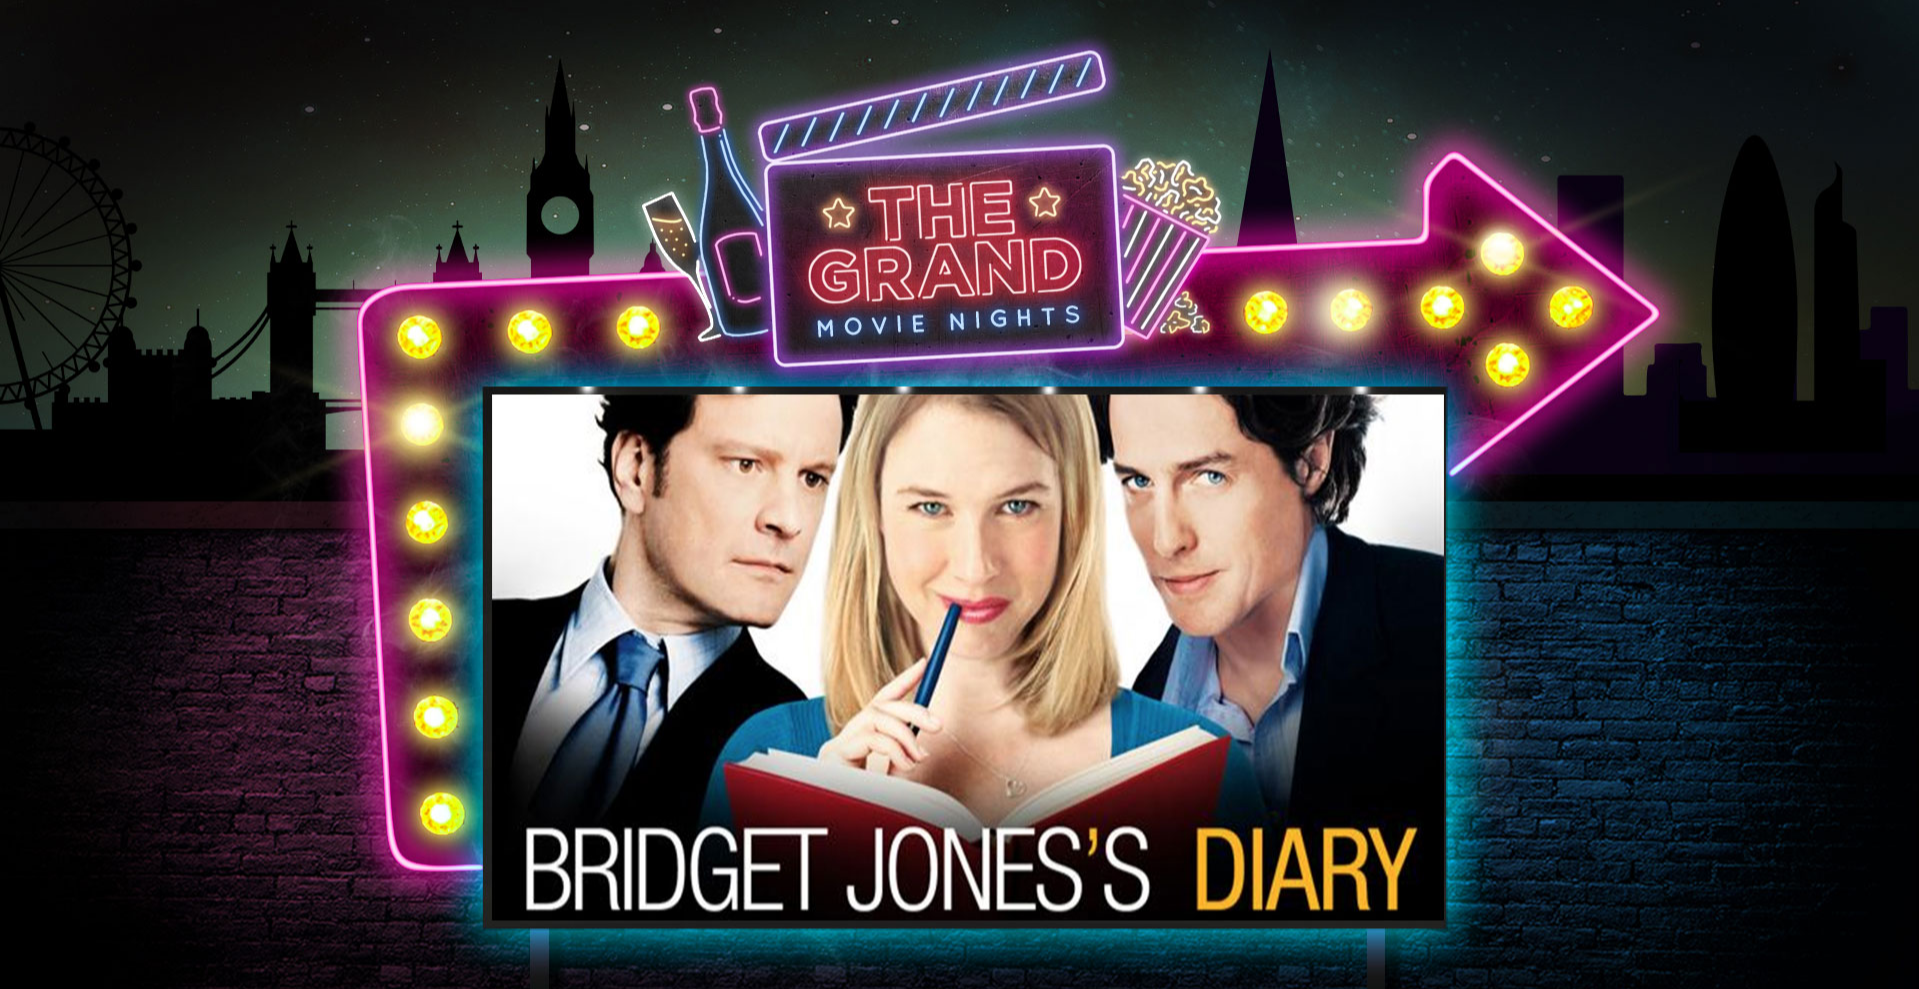 Bridget Jones's Diary Movie Night